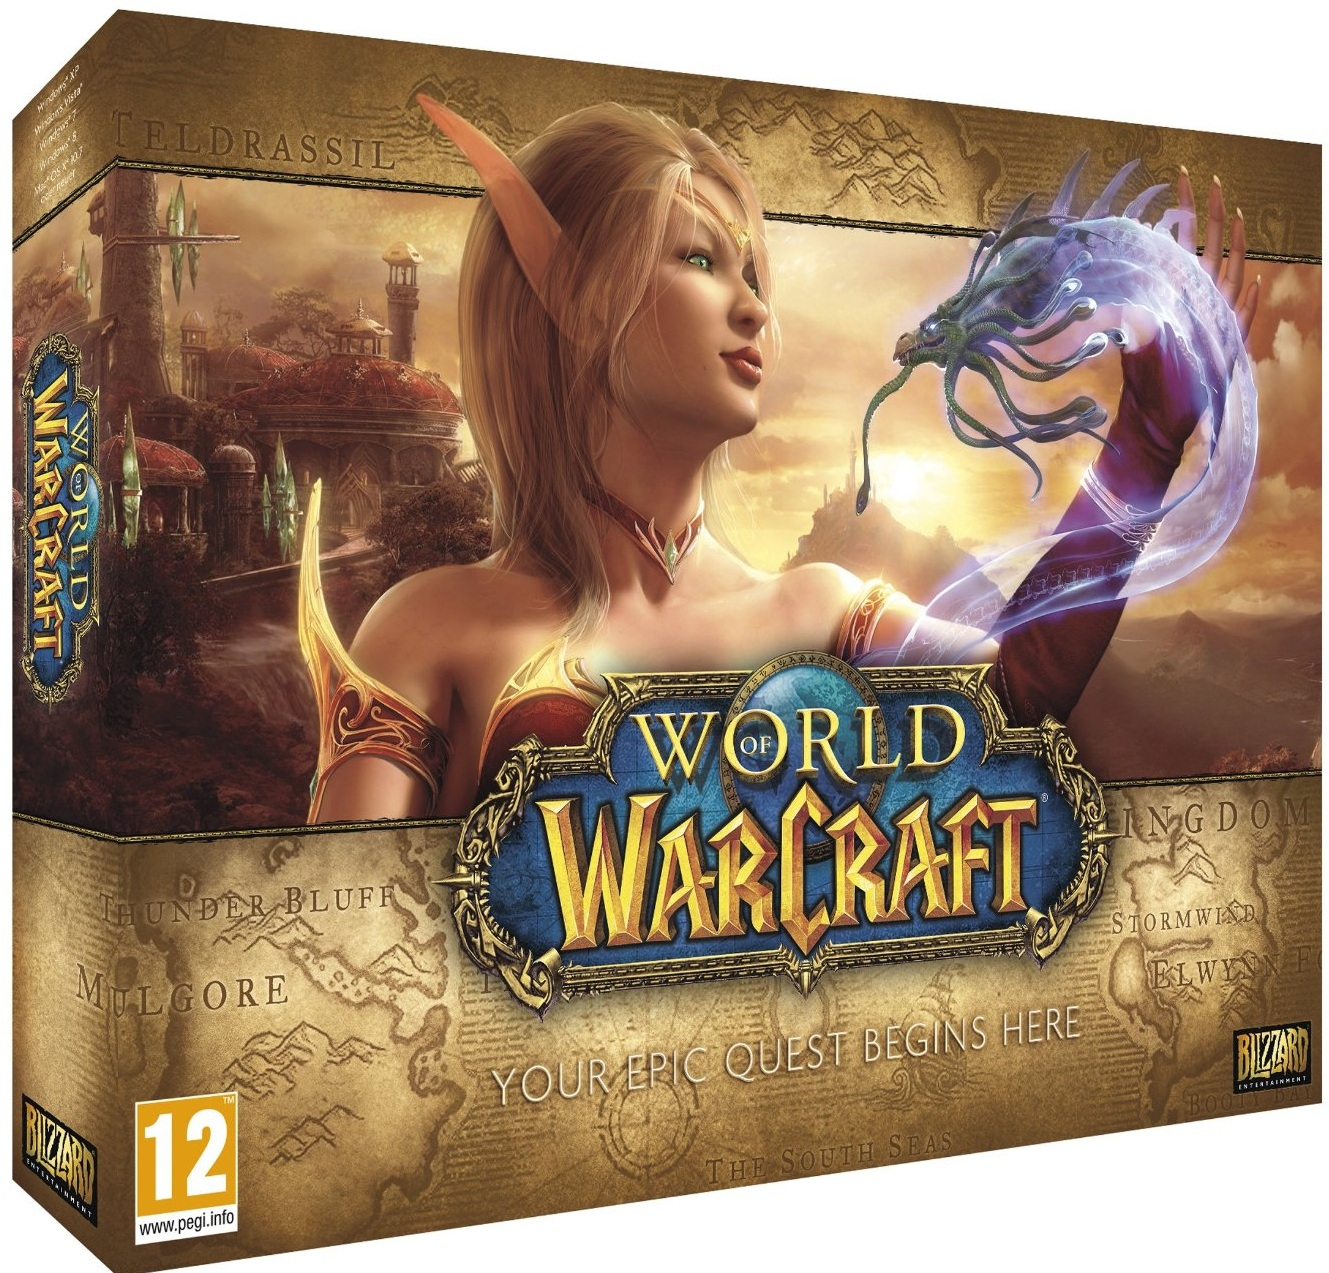 World of Warcraft-PC                                                                                                                                   By:Blizzard Entertainment                             Eur:52.02 Ден:2599